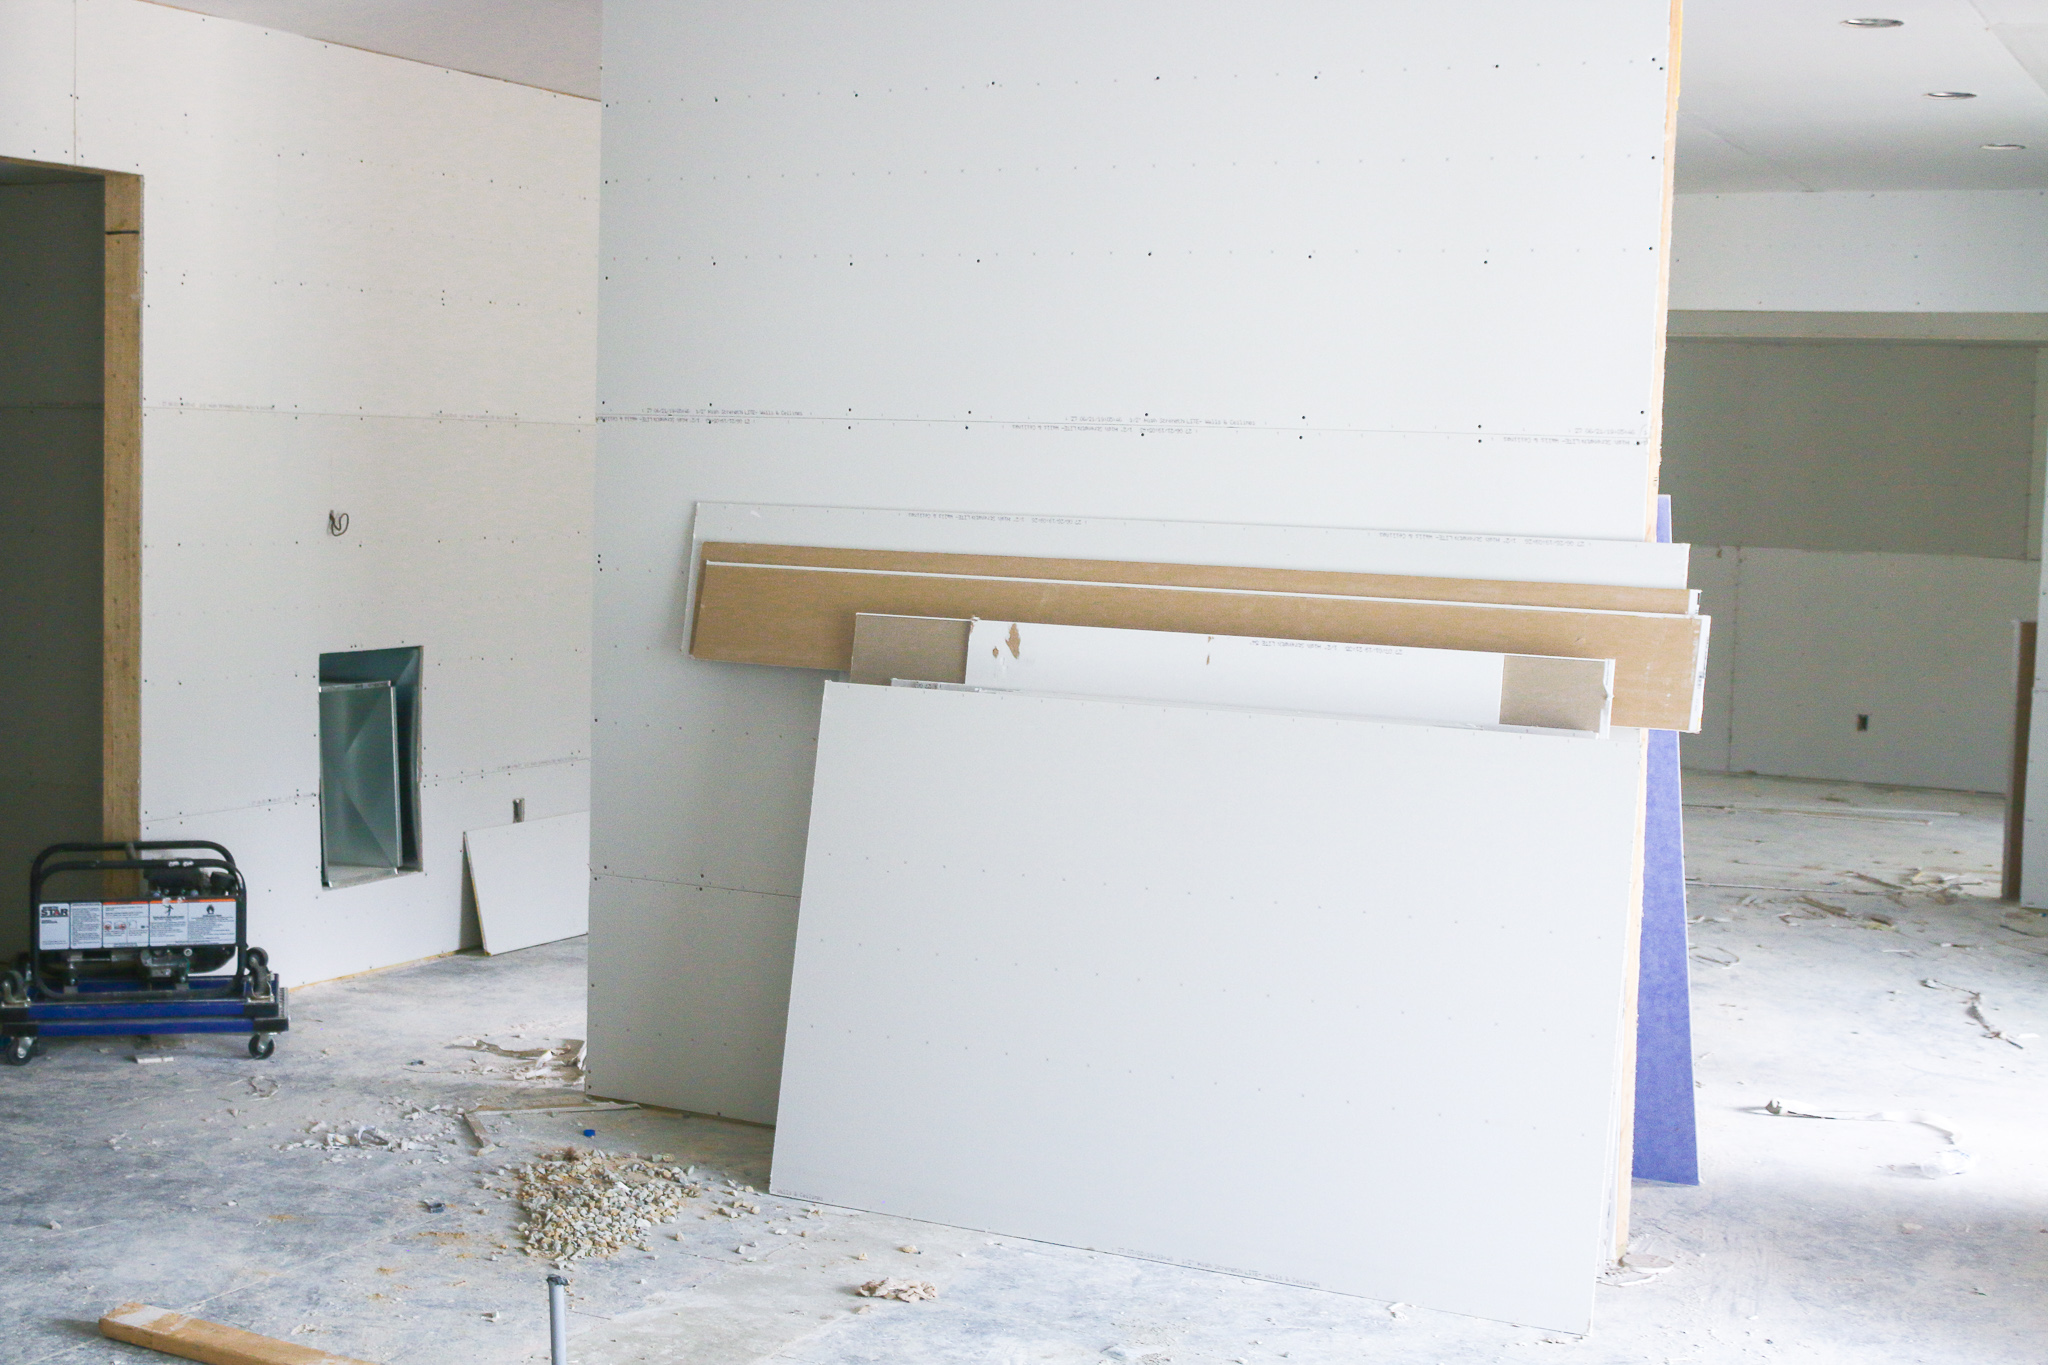 YAY! We have drywall! October can't come soon enough!